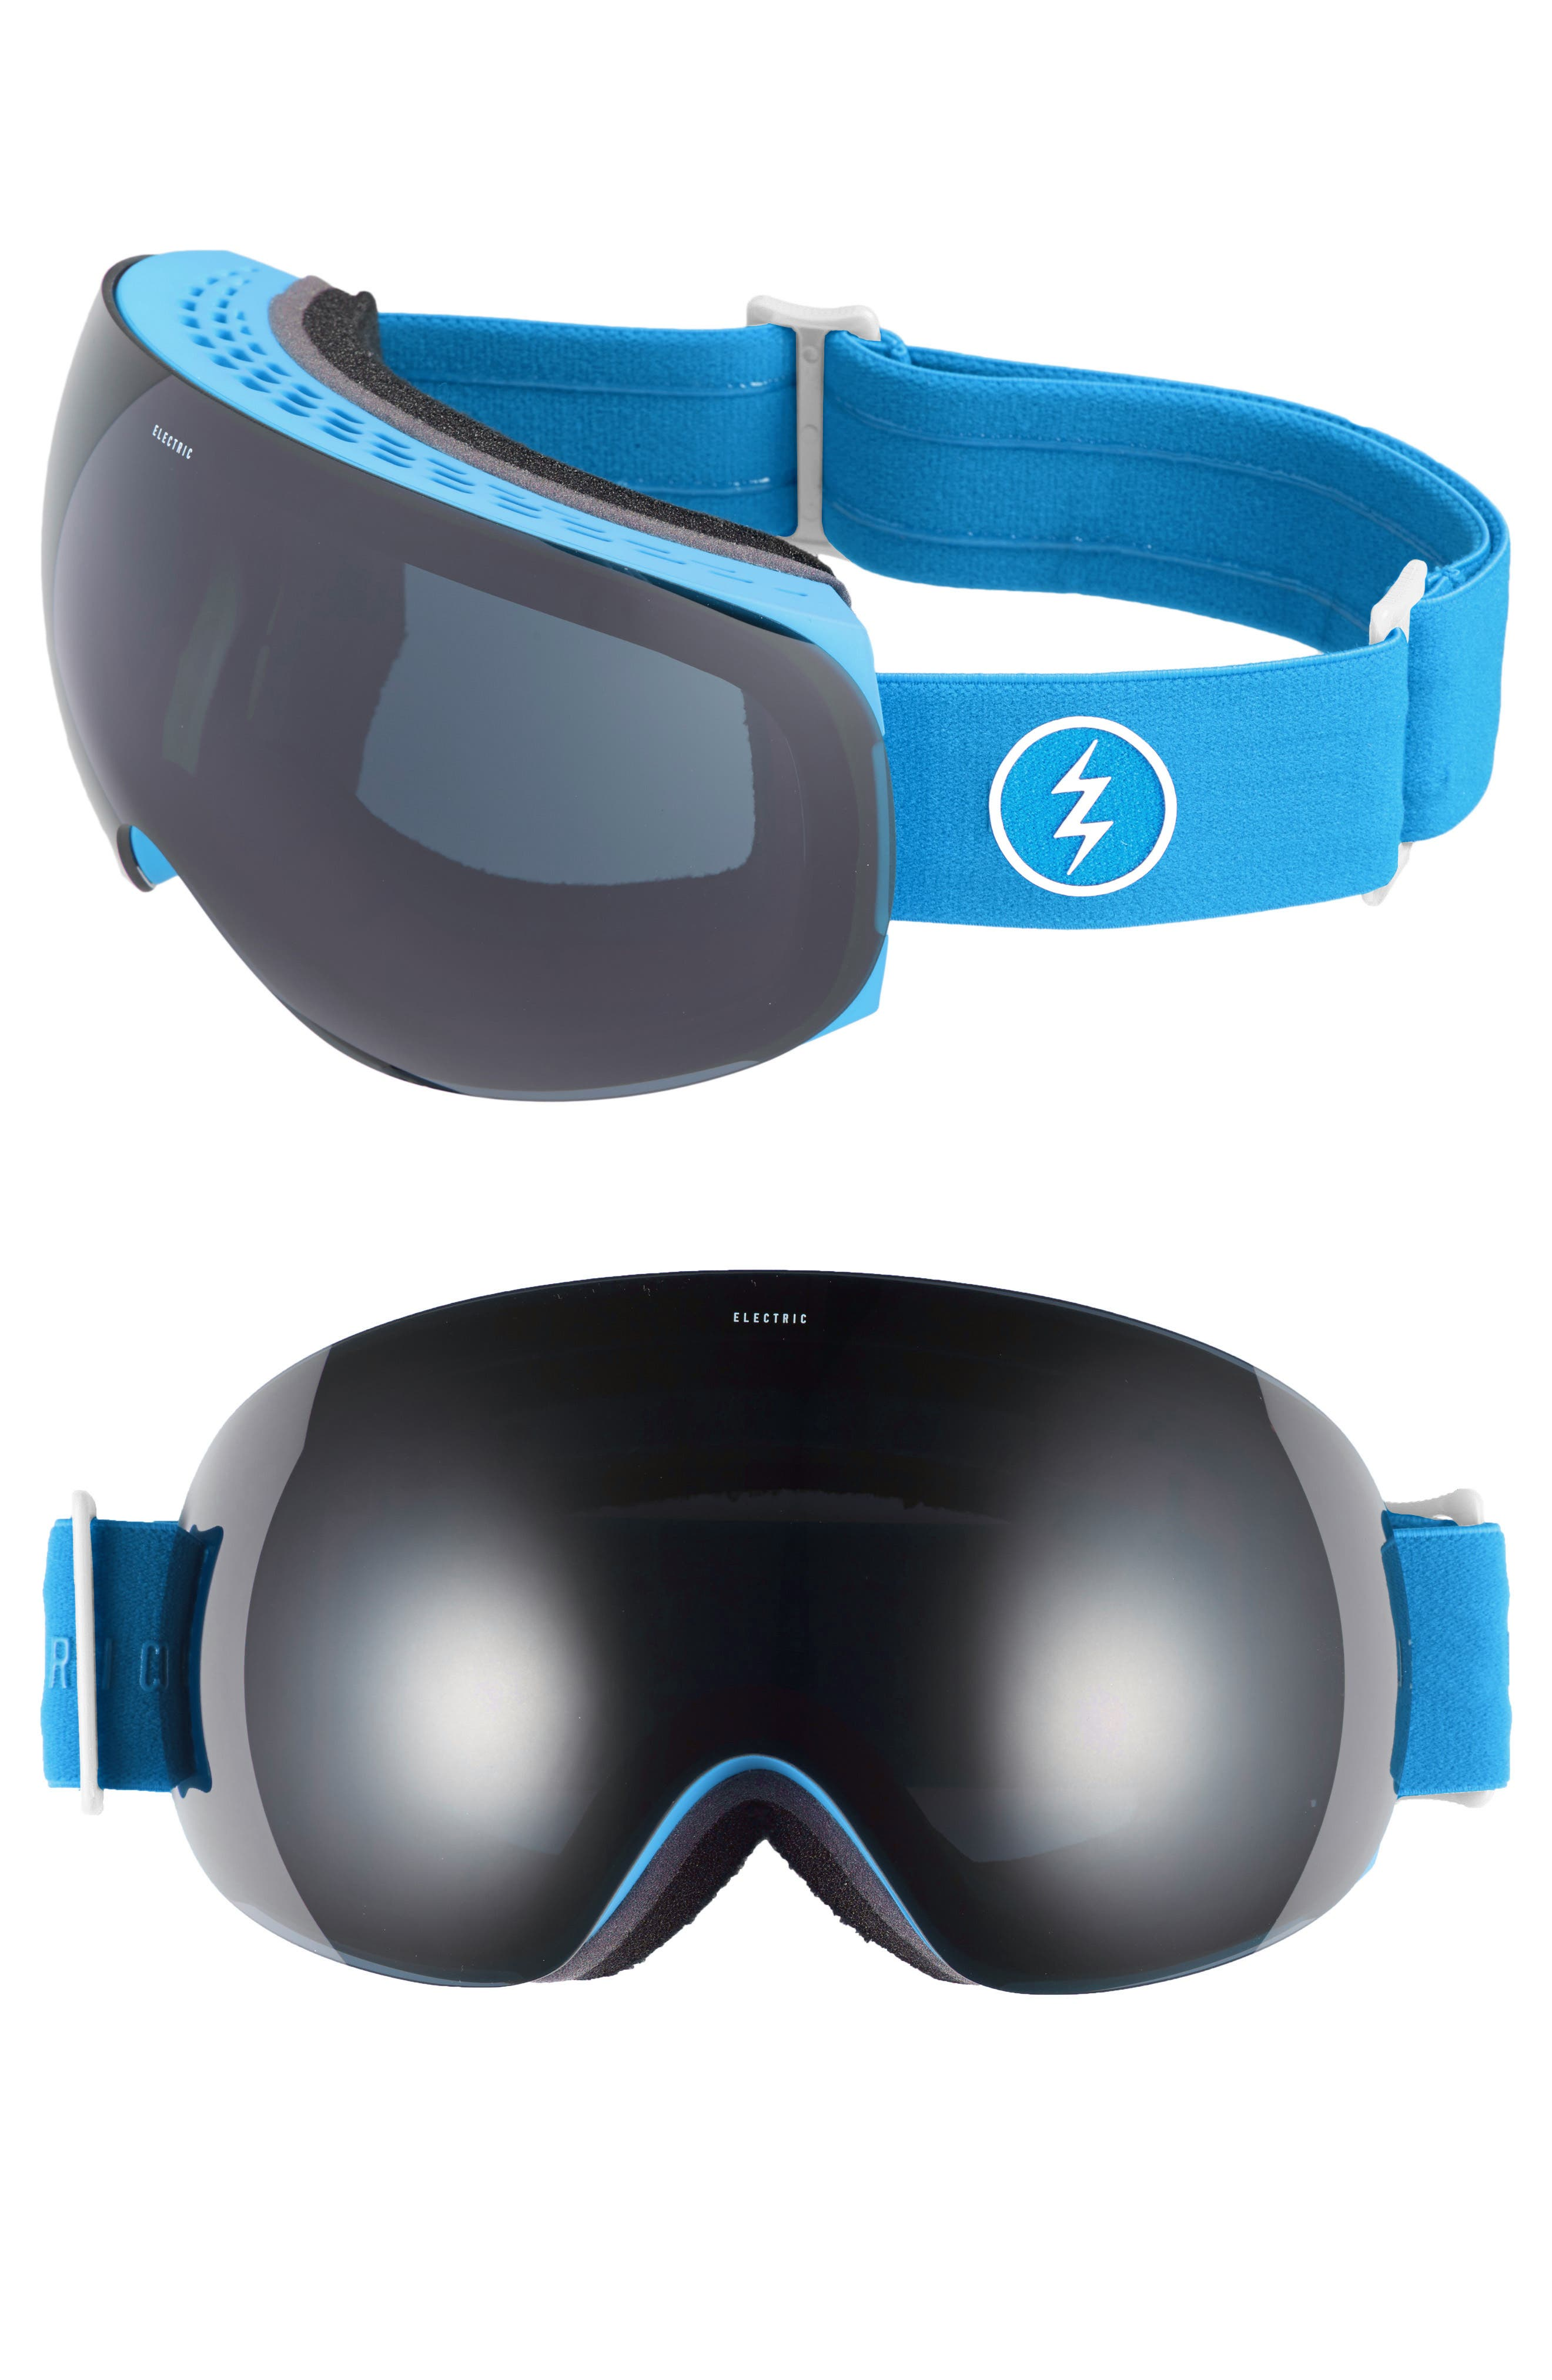 Alternate Image 1 Selected - ELECTRIC EG3 254mm Snow Goggles